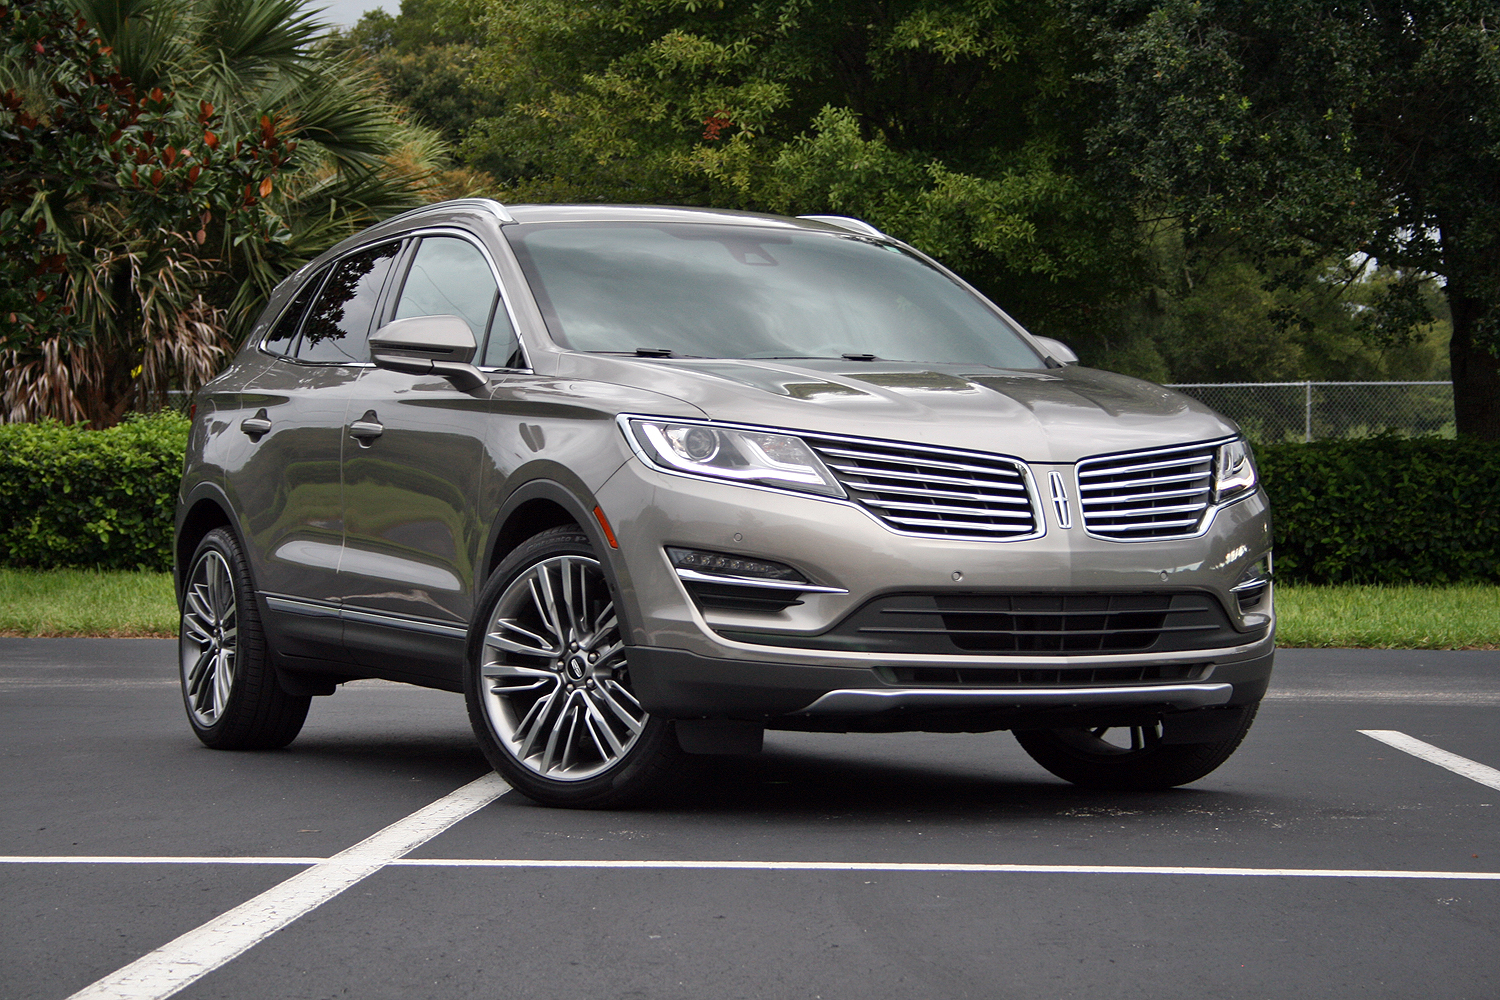 2016 lincoln mkc driven review top speed. Black Bedroom Furniture Sets. Home Design Ideas